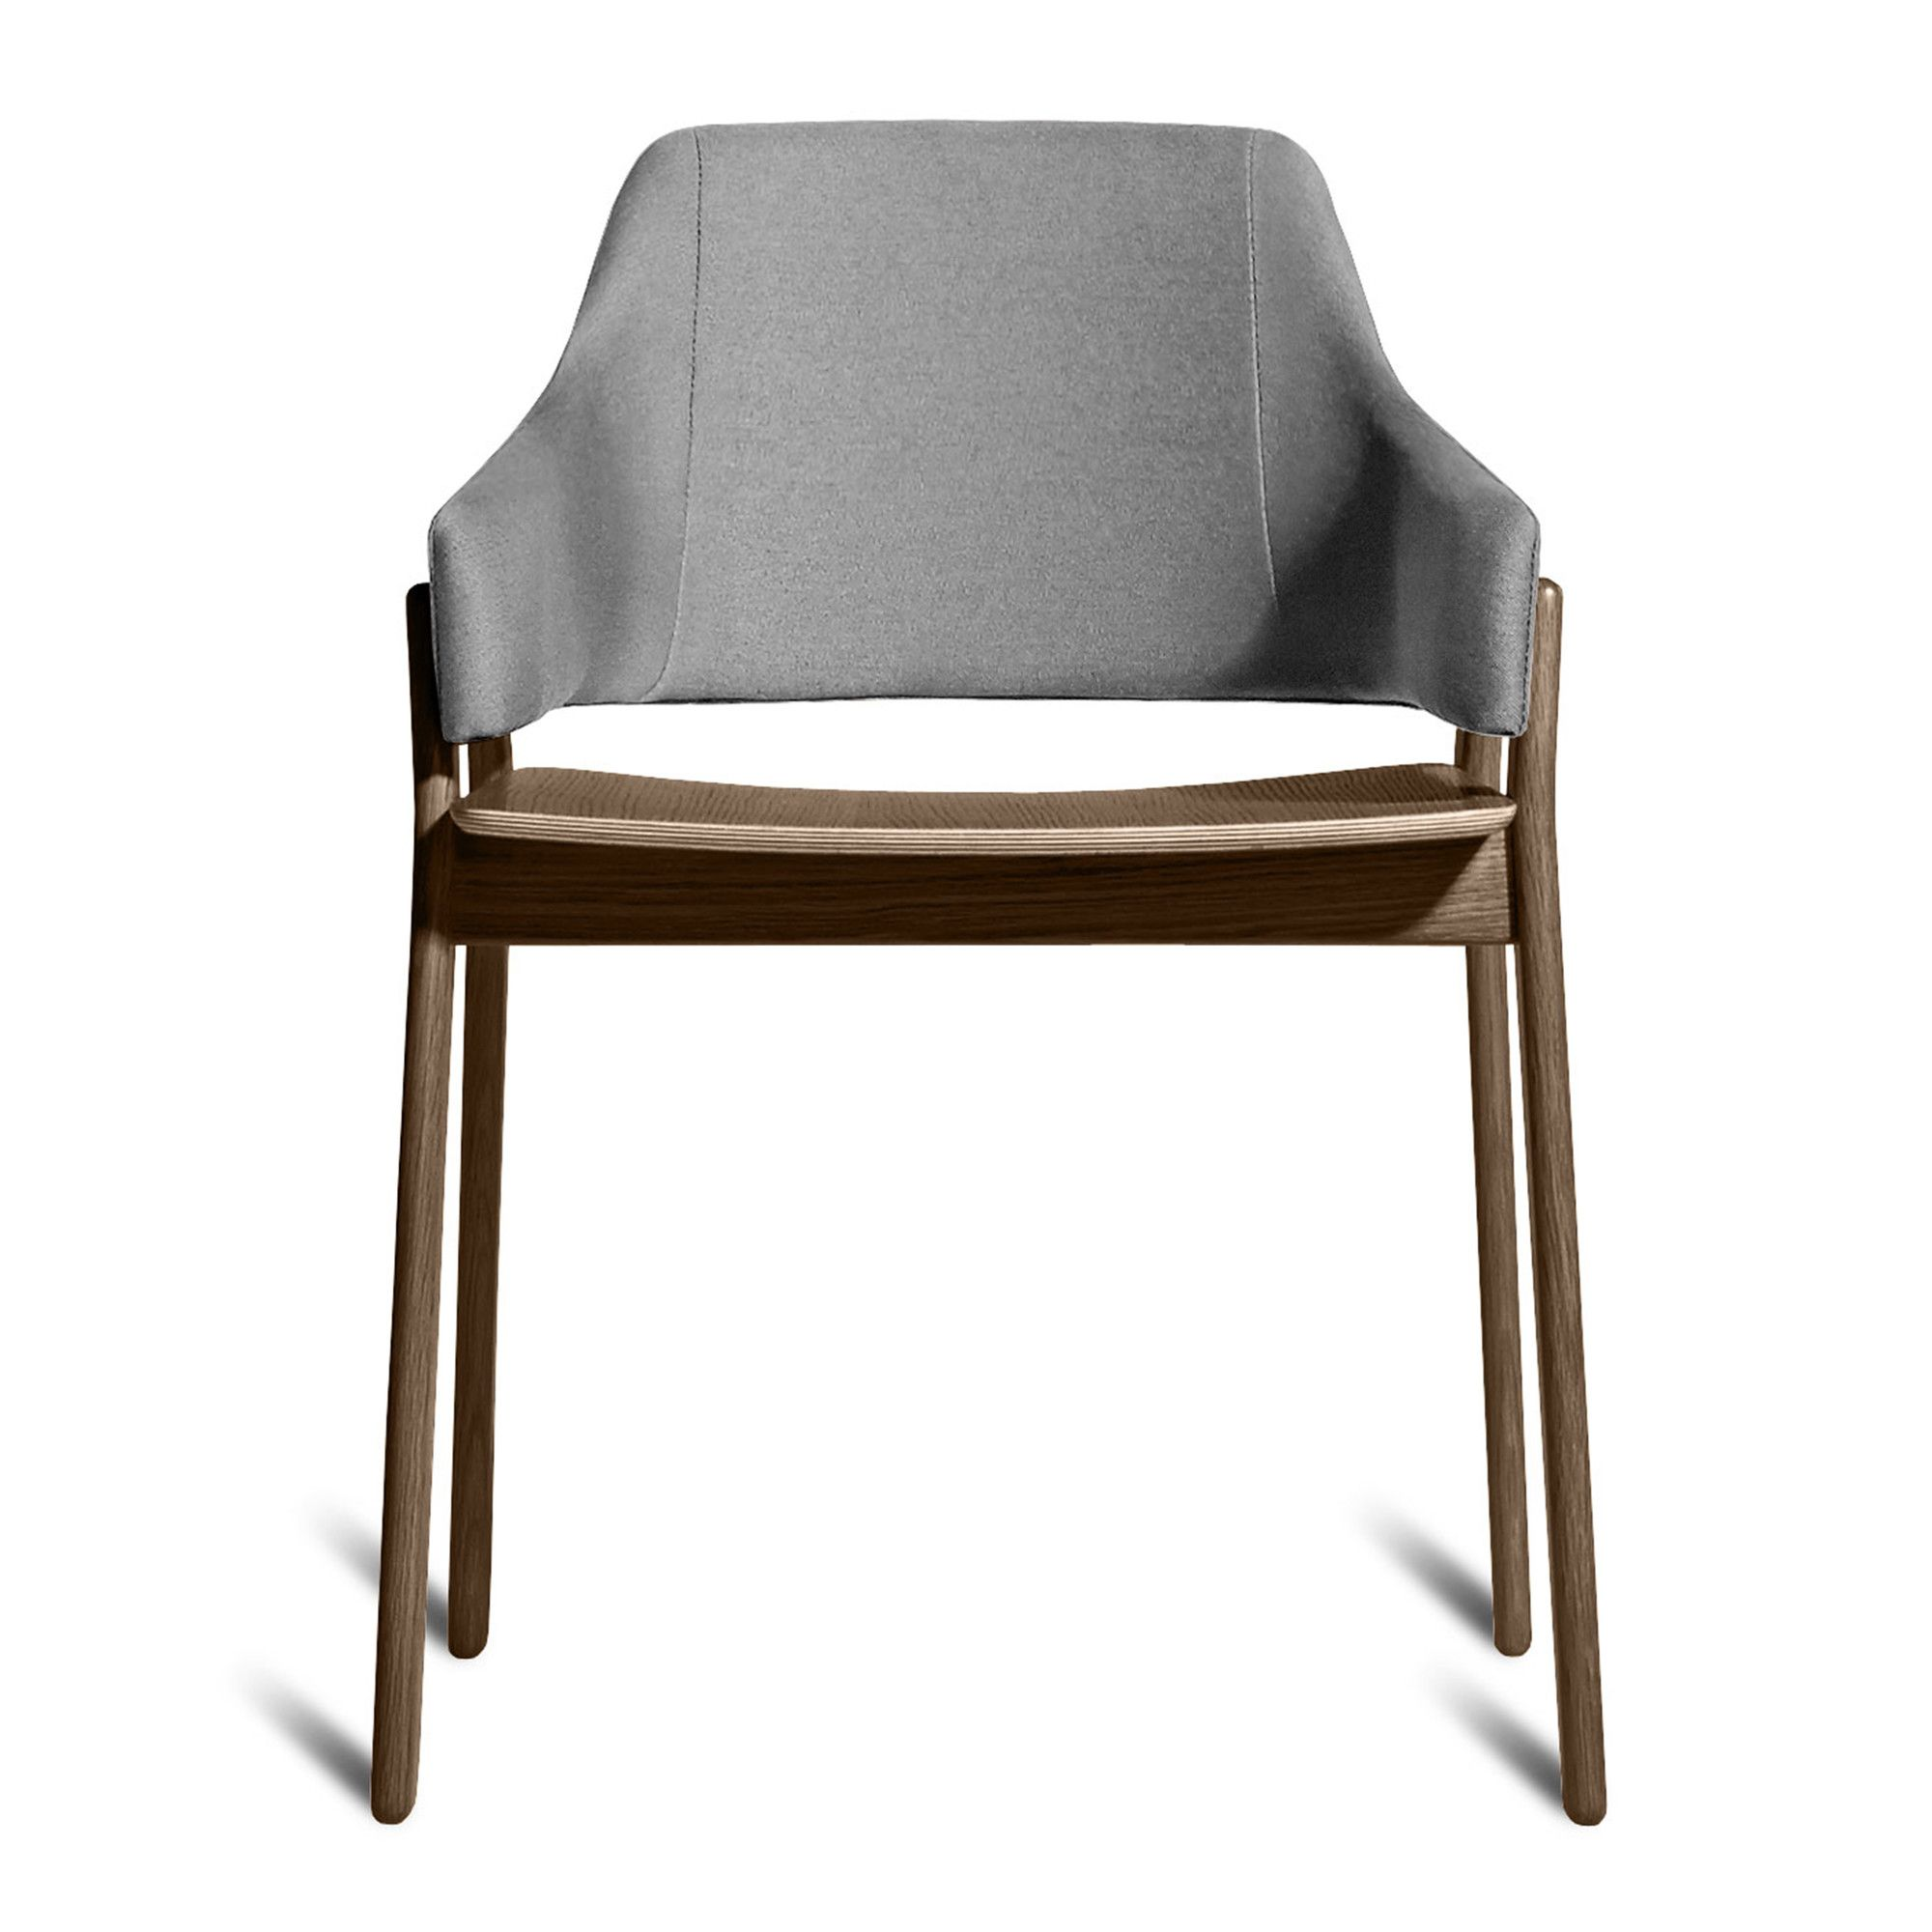 Muebles Blu Dot - Blu Dot Clutch Dining Chair In Pewter Allmodern 399 Virginia [mjhdah]https://i.pinimg.com/originals/fc/de/81/fcde8184ee7c257b6c6f74dde5a985f5.jpg